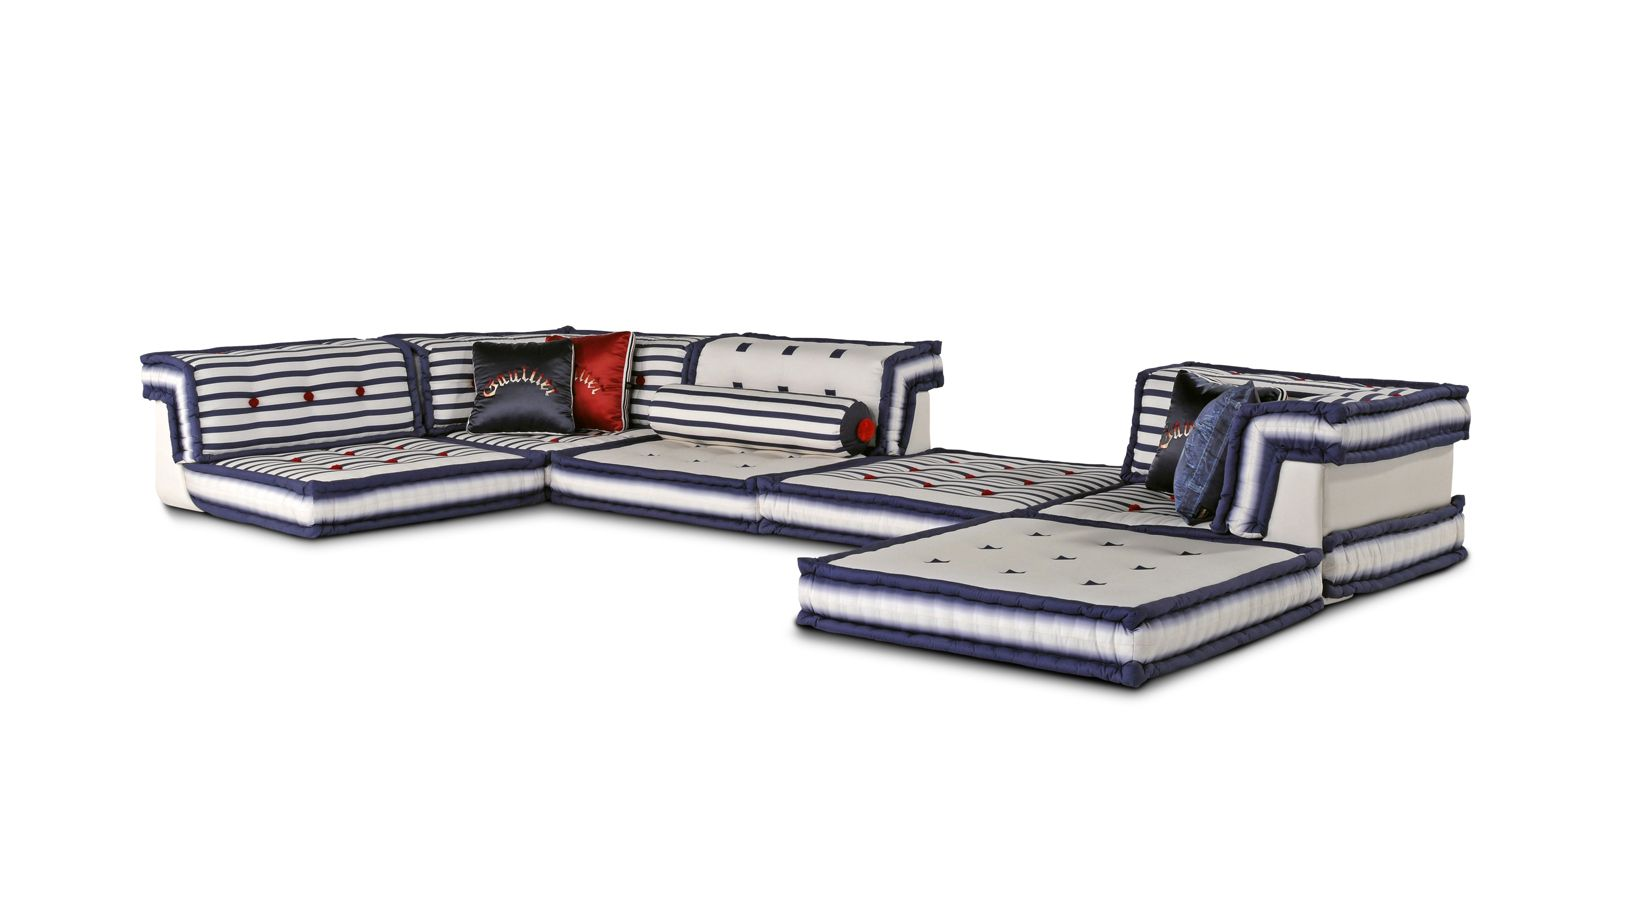 composizione matelot jean paul gaultier mah jong roche. Black Bedroom Furniture Sets. Home Design Ideas